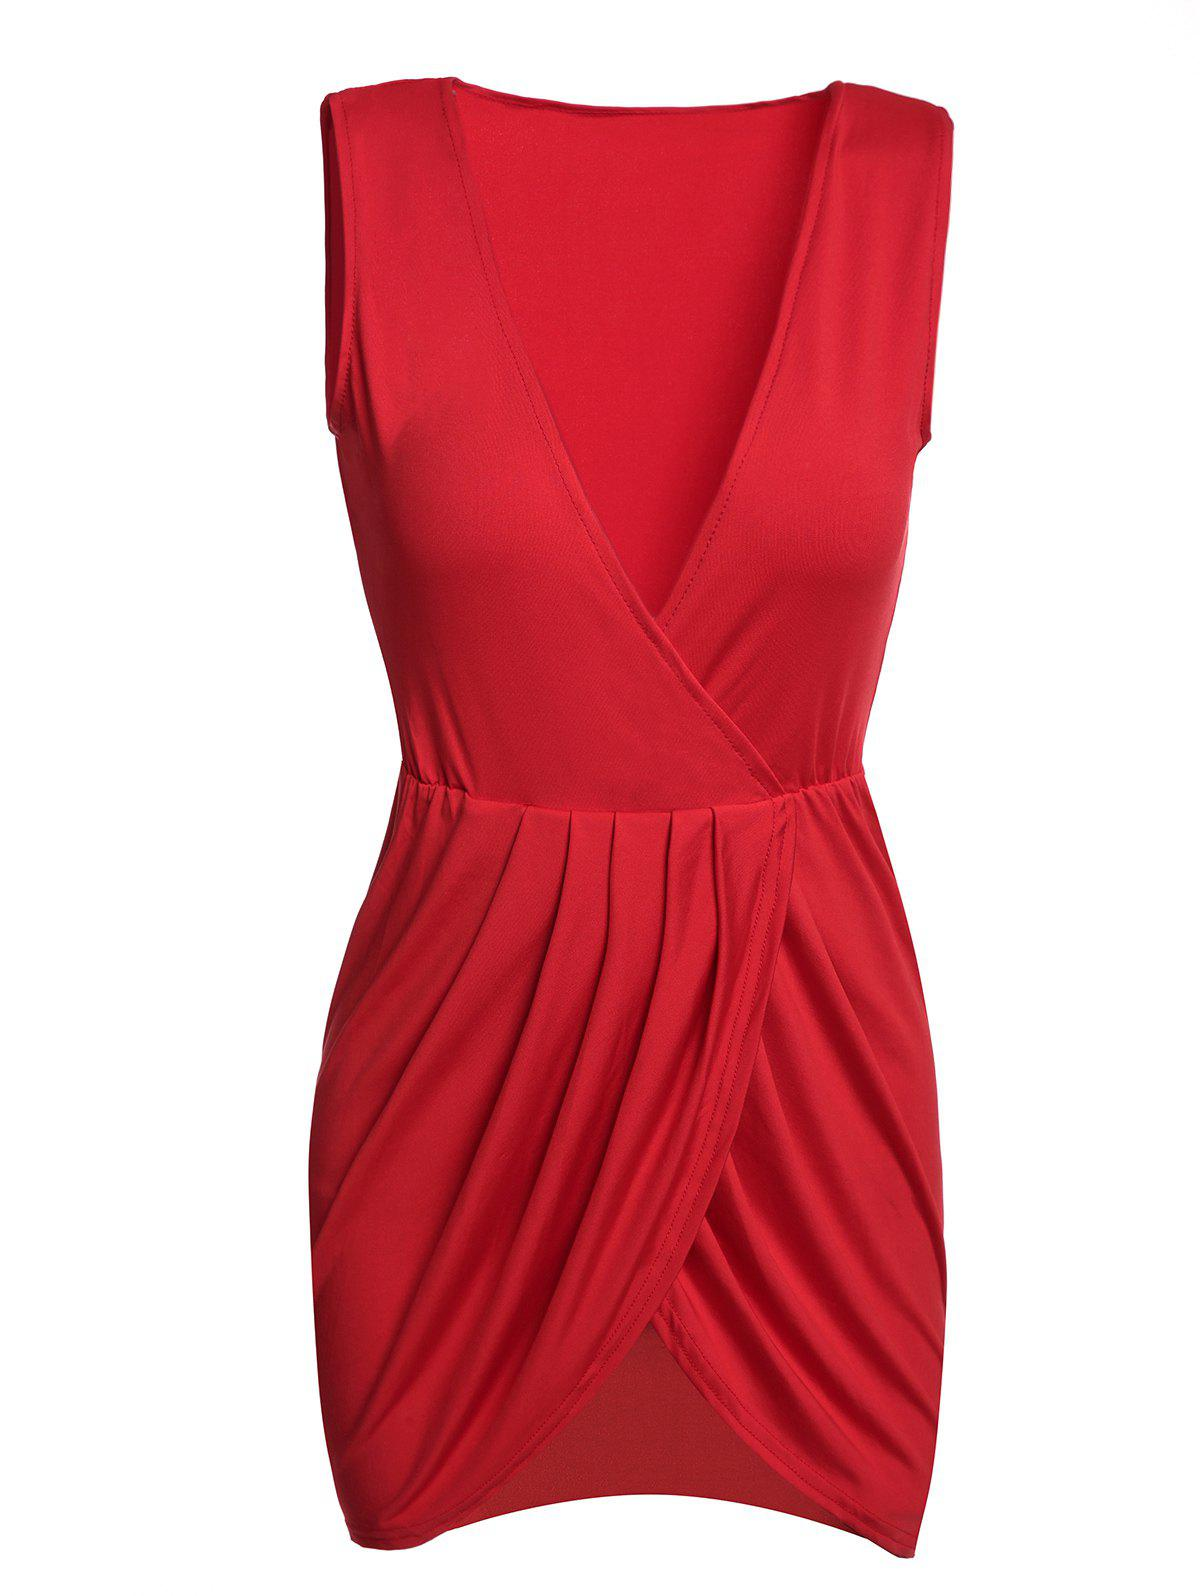 Sexy Women's Plunging Neck Sleeveless Solid Color Mini Dress